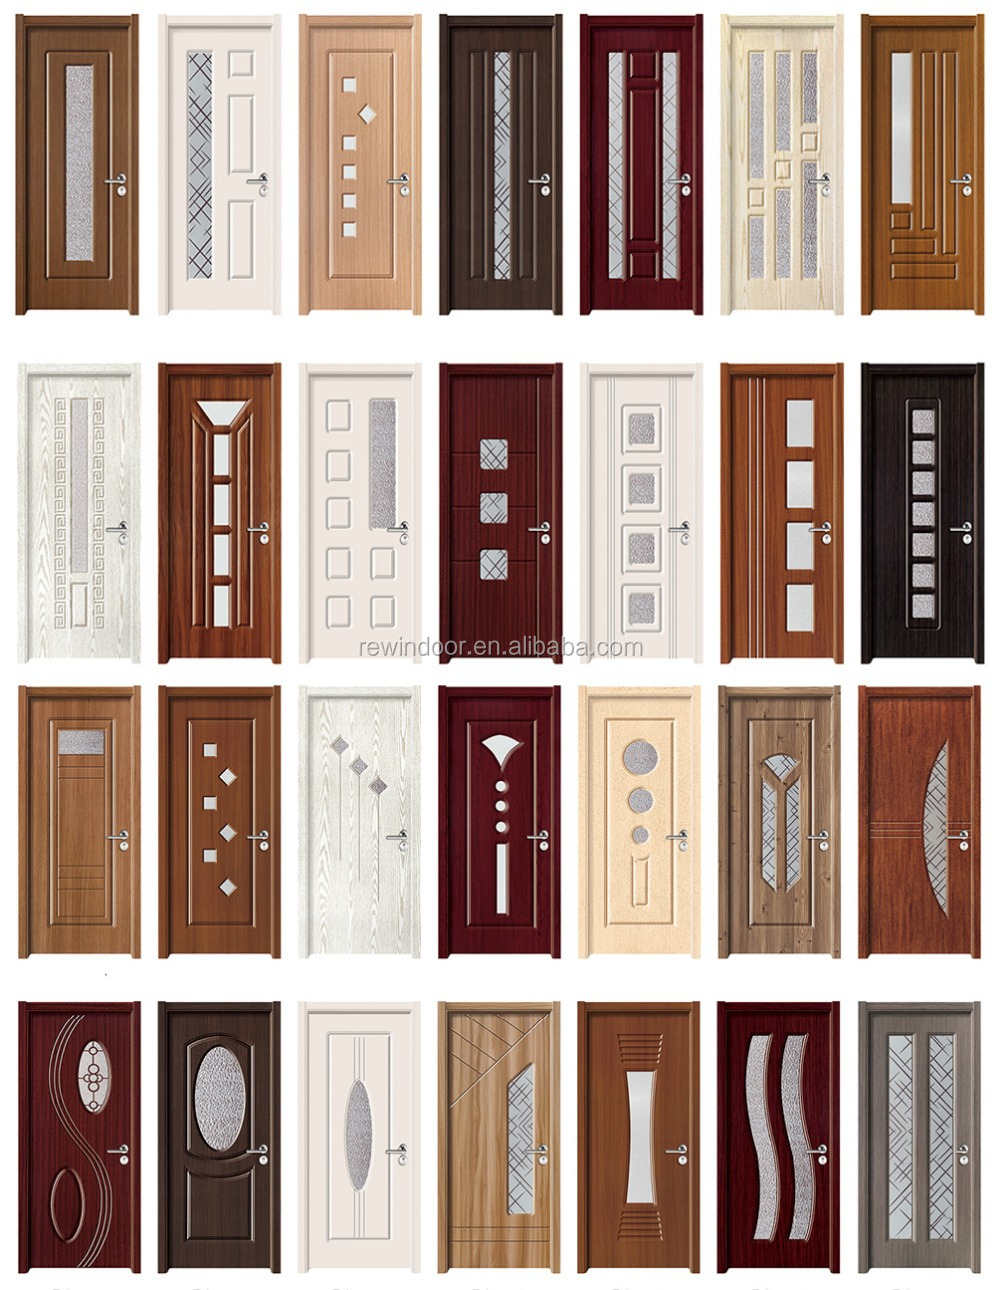 Anti theft new design wooden mosquito net door design for Interior design ideas for main door